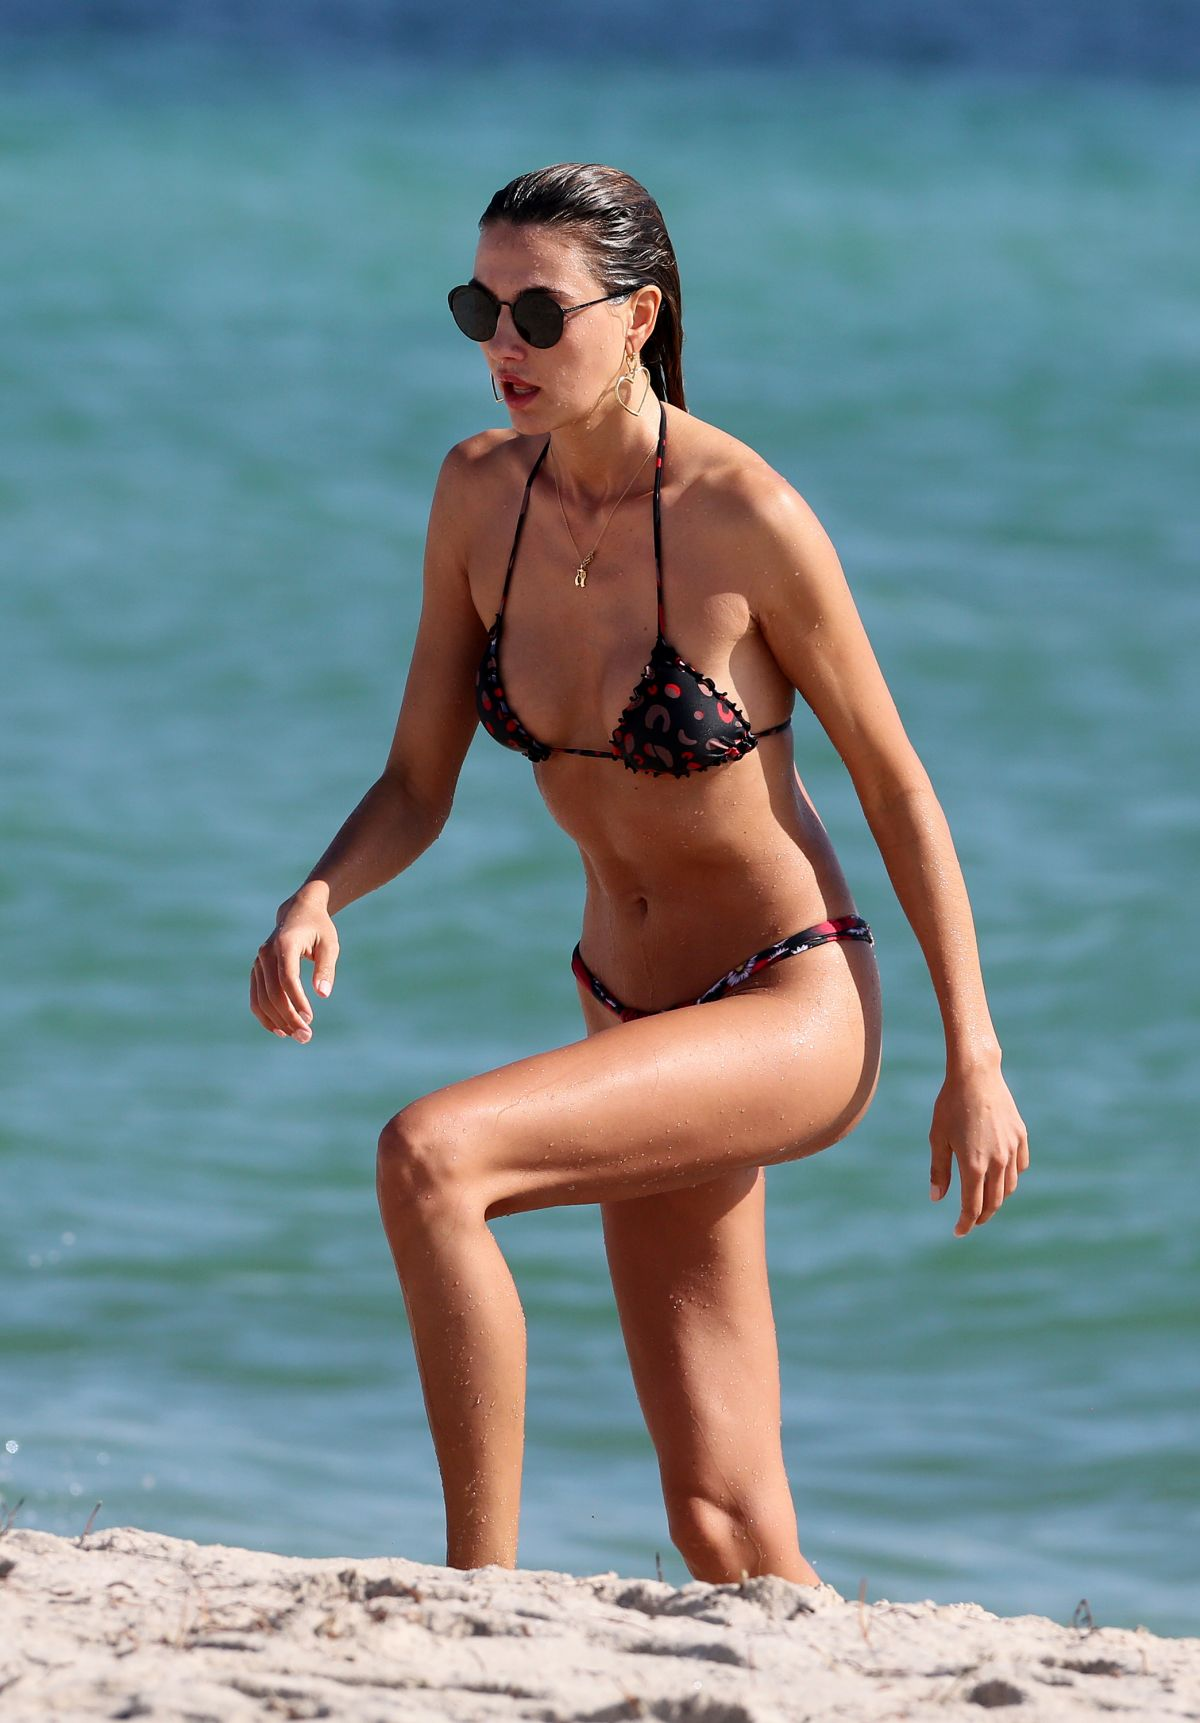 Alina Baikova in Bikini on the beach in Miami Pic 5 of 35